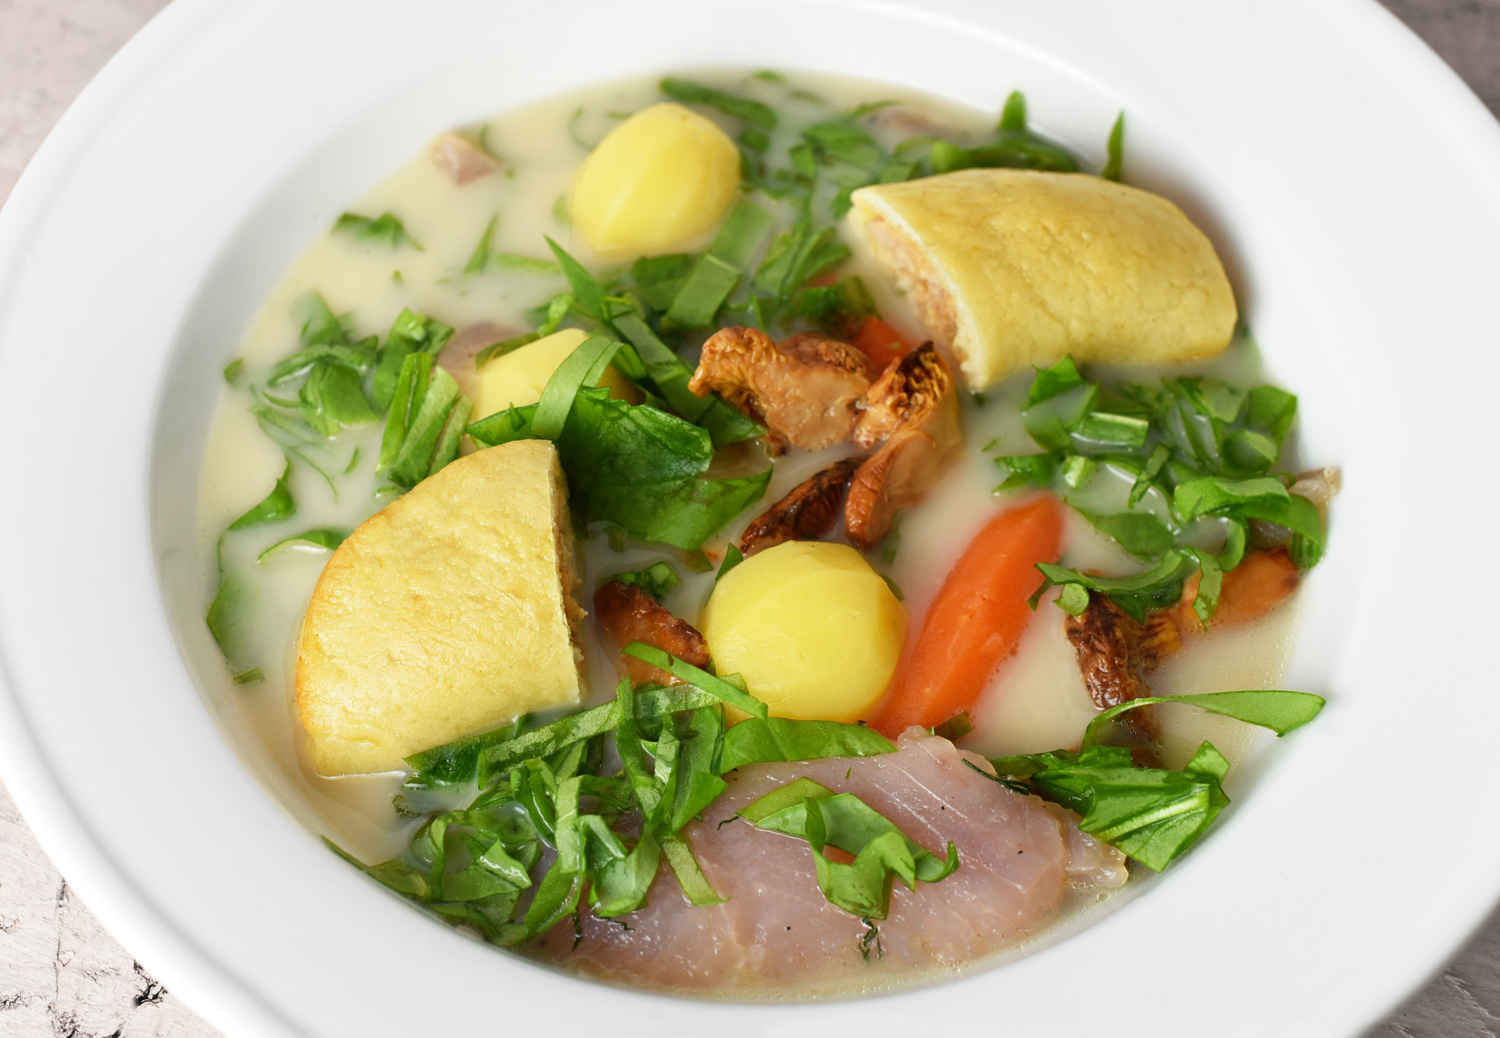 Russian Food - Trout Broth with Pirozhki